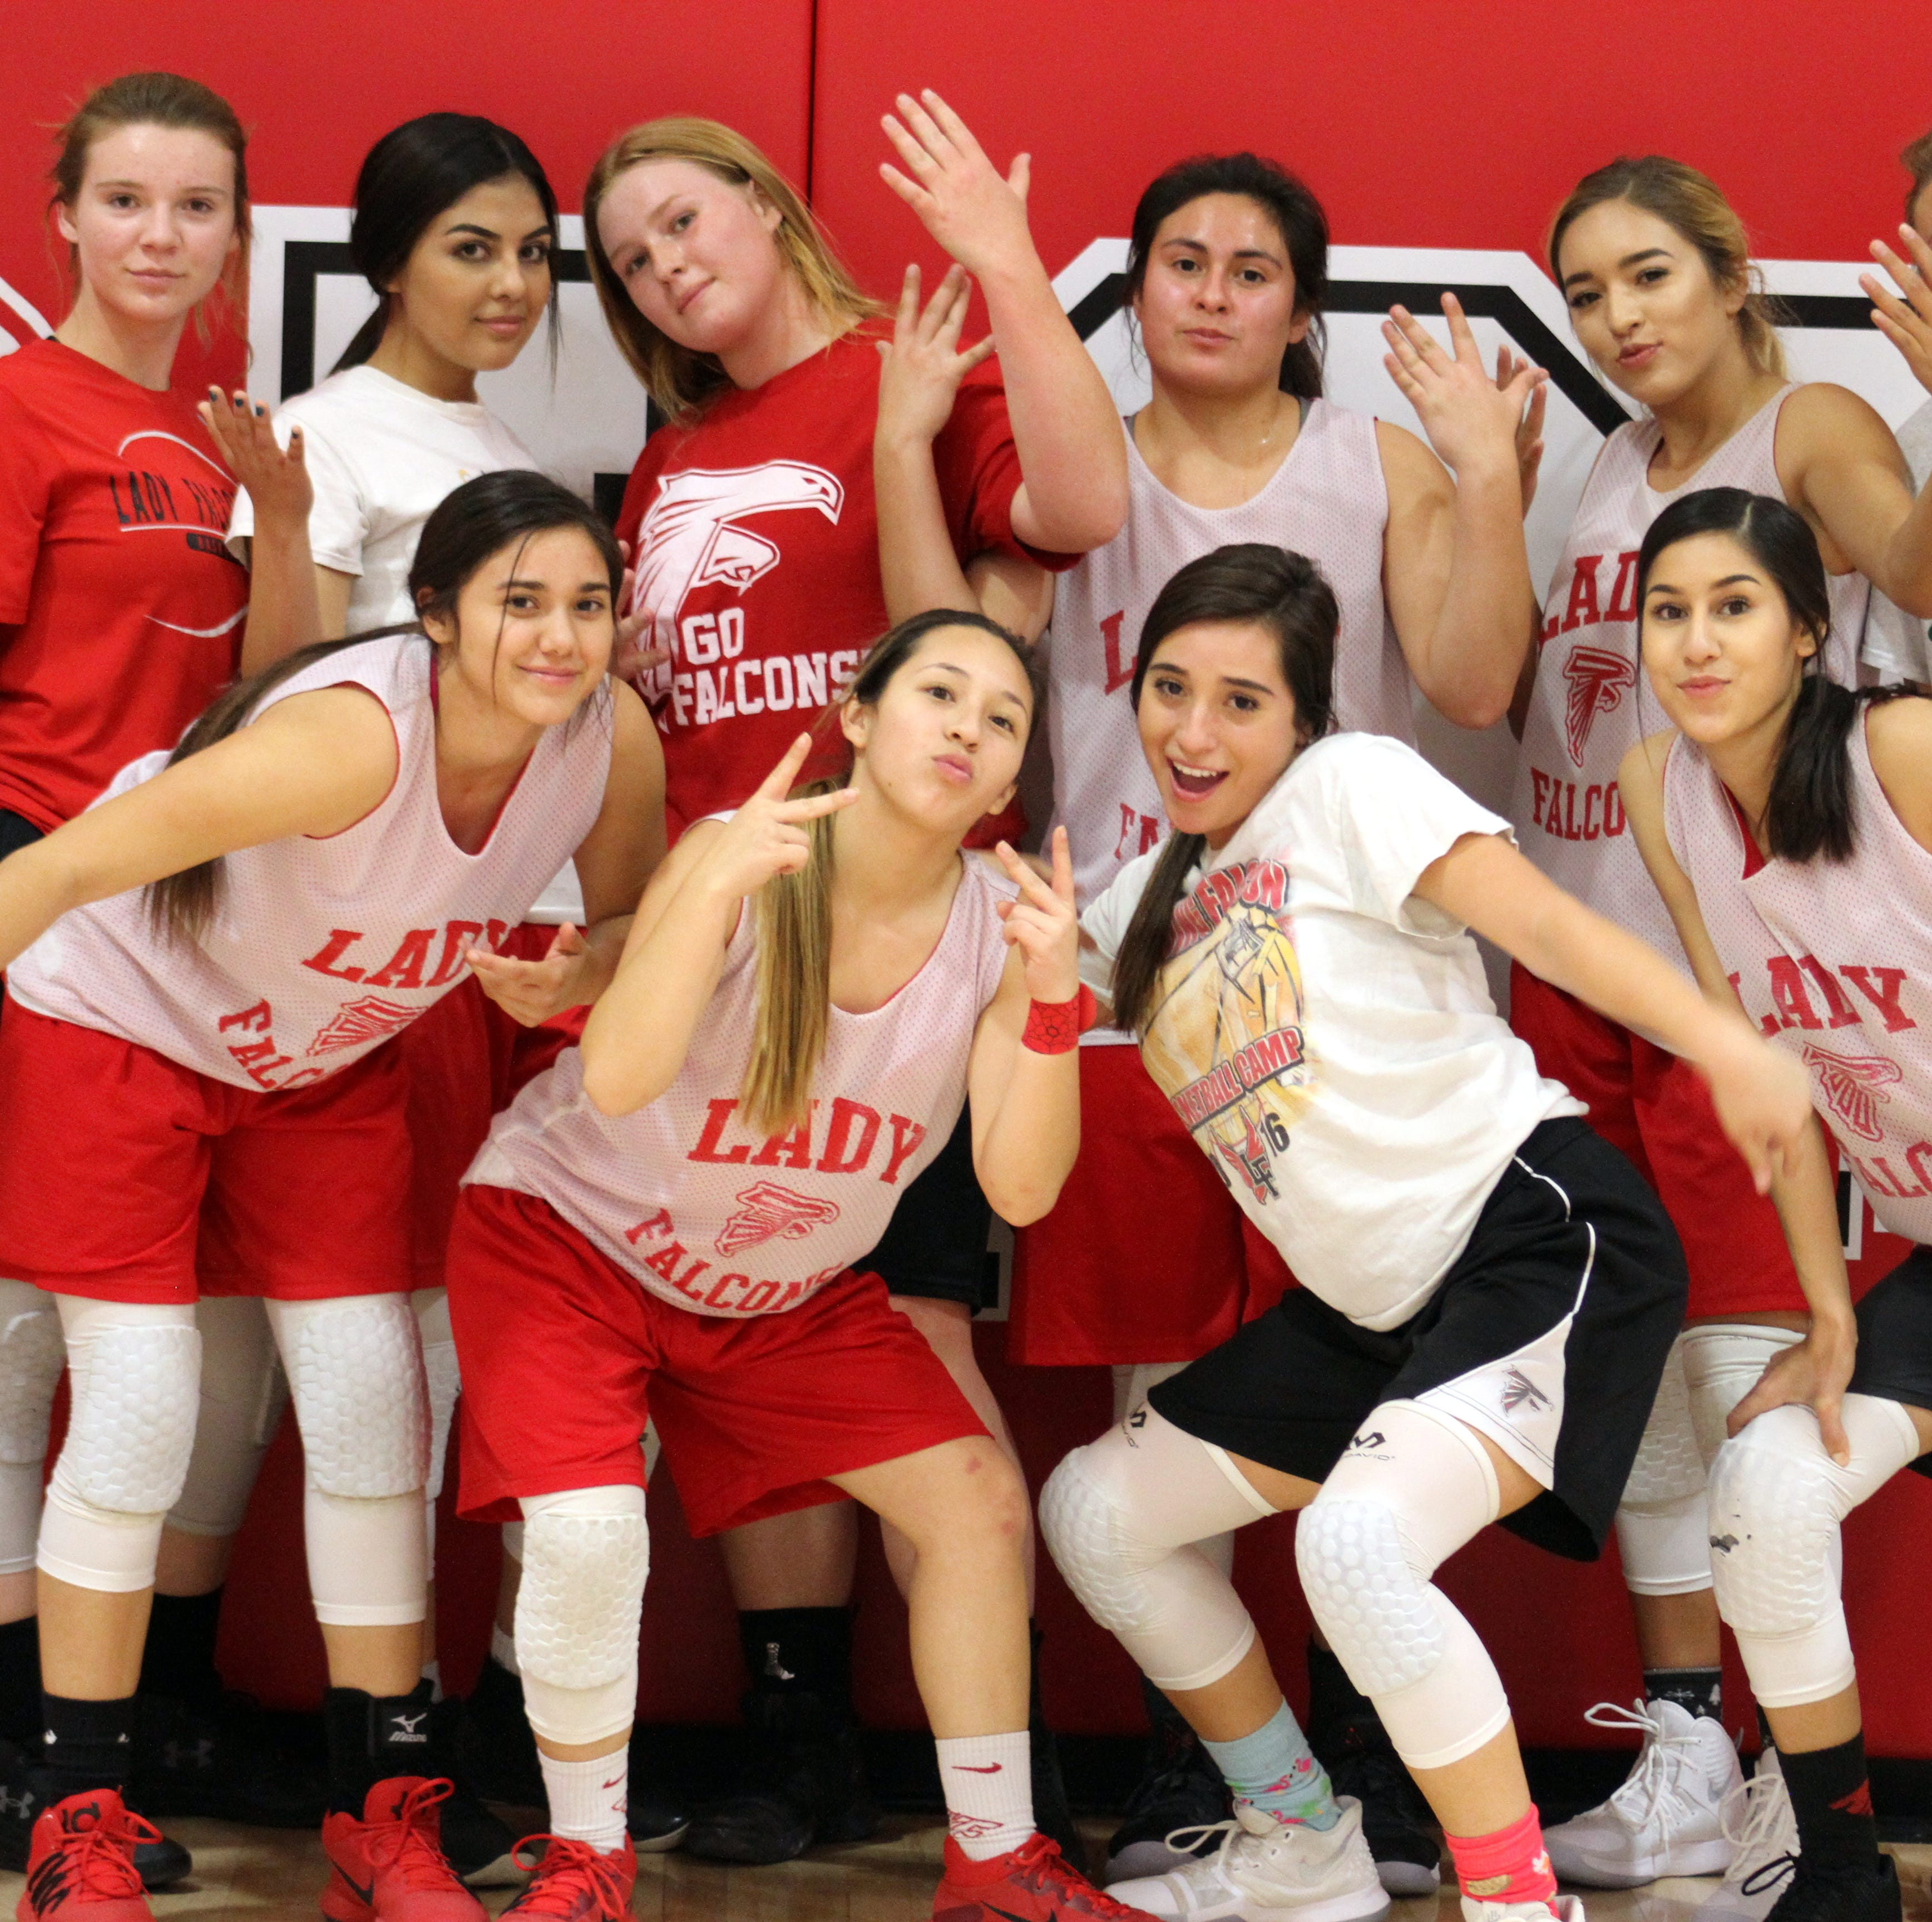 Martinez hopes to lead Lady Falcons to district title